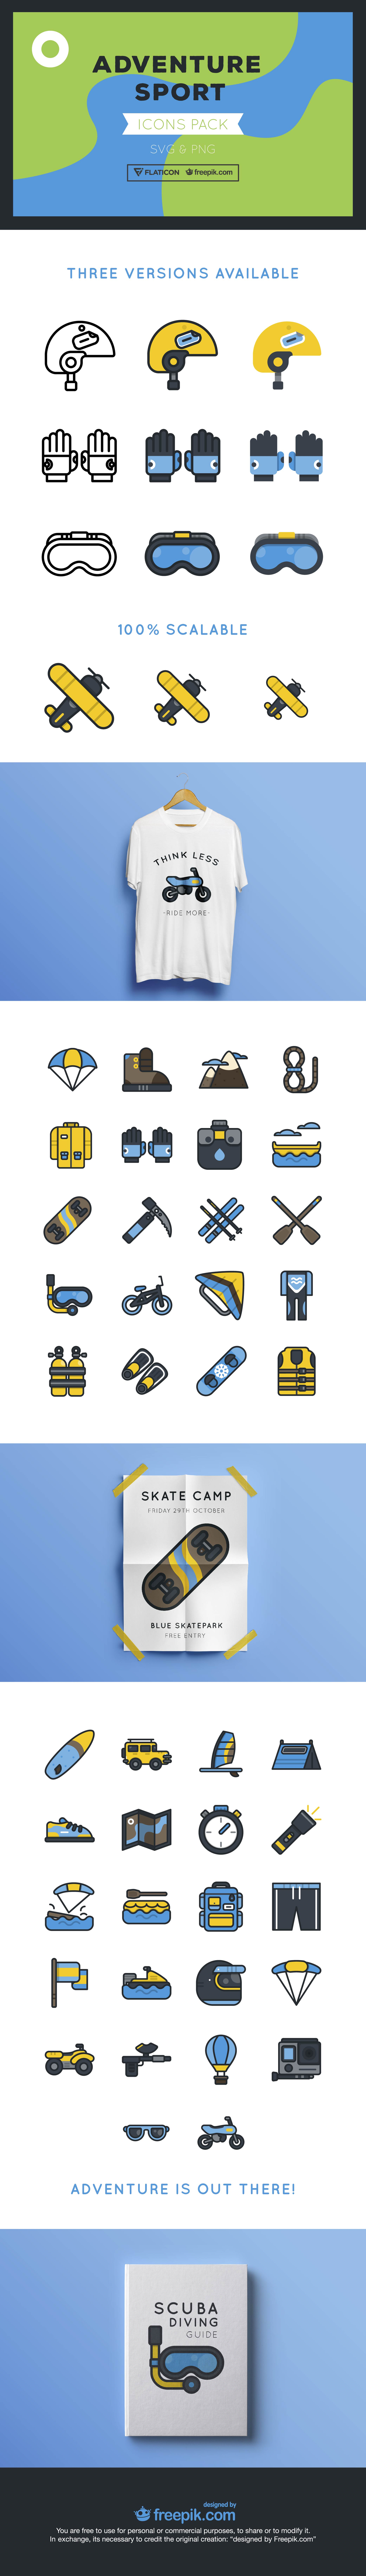 free adverture sport icons